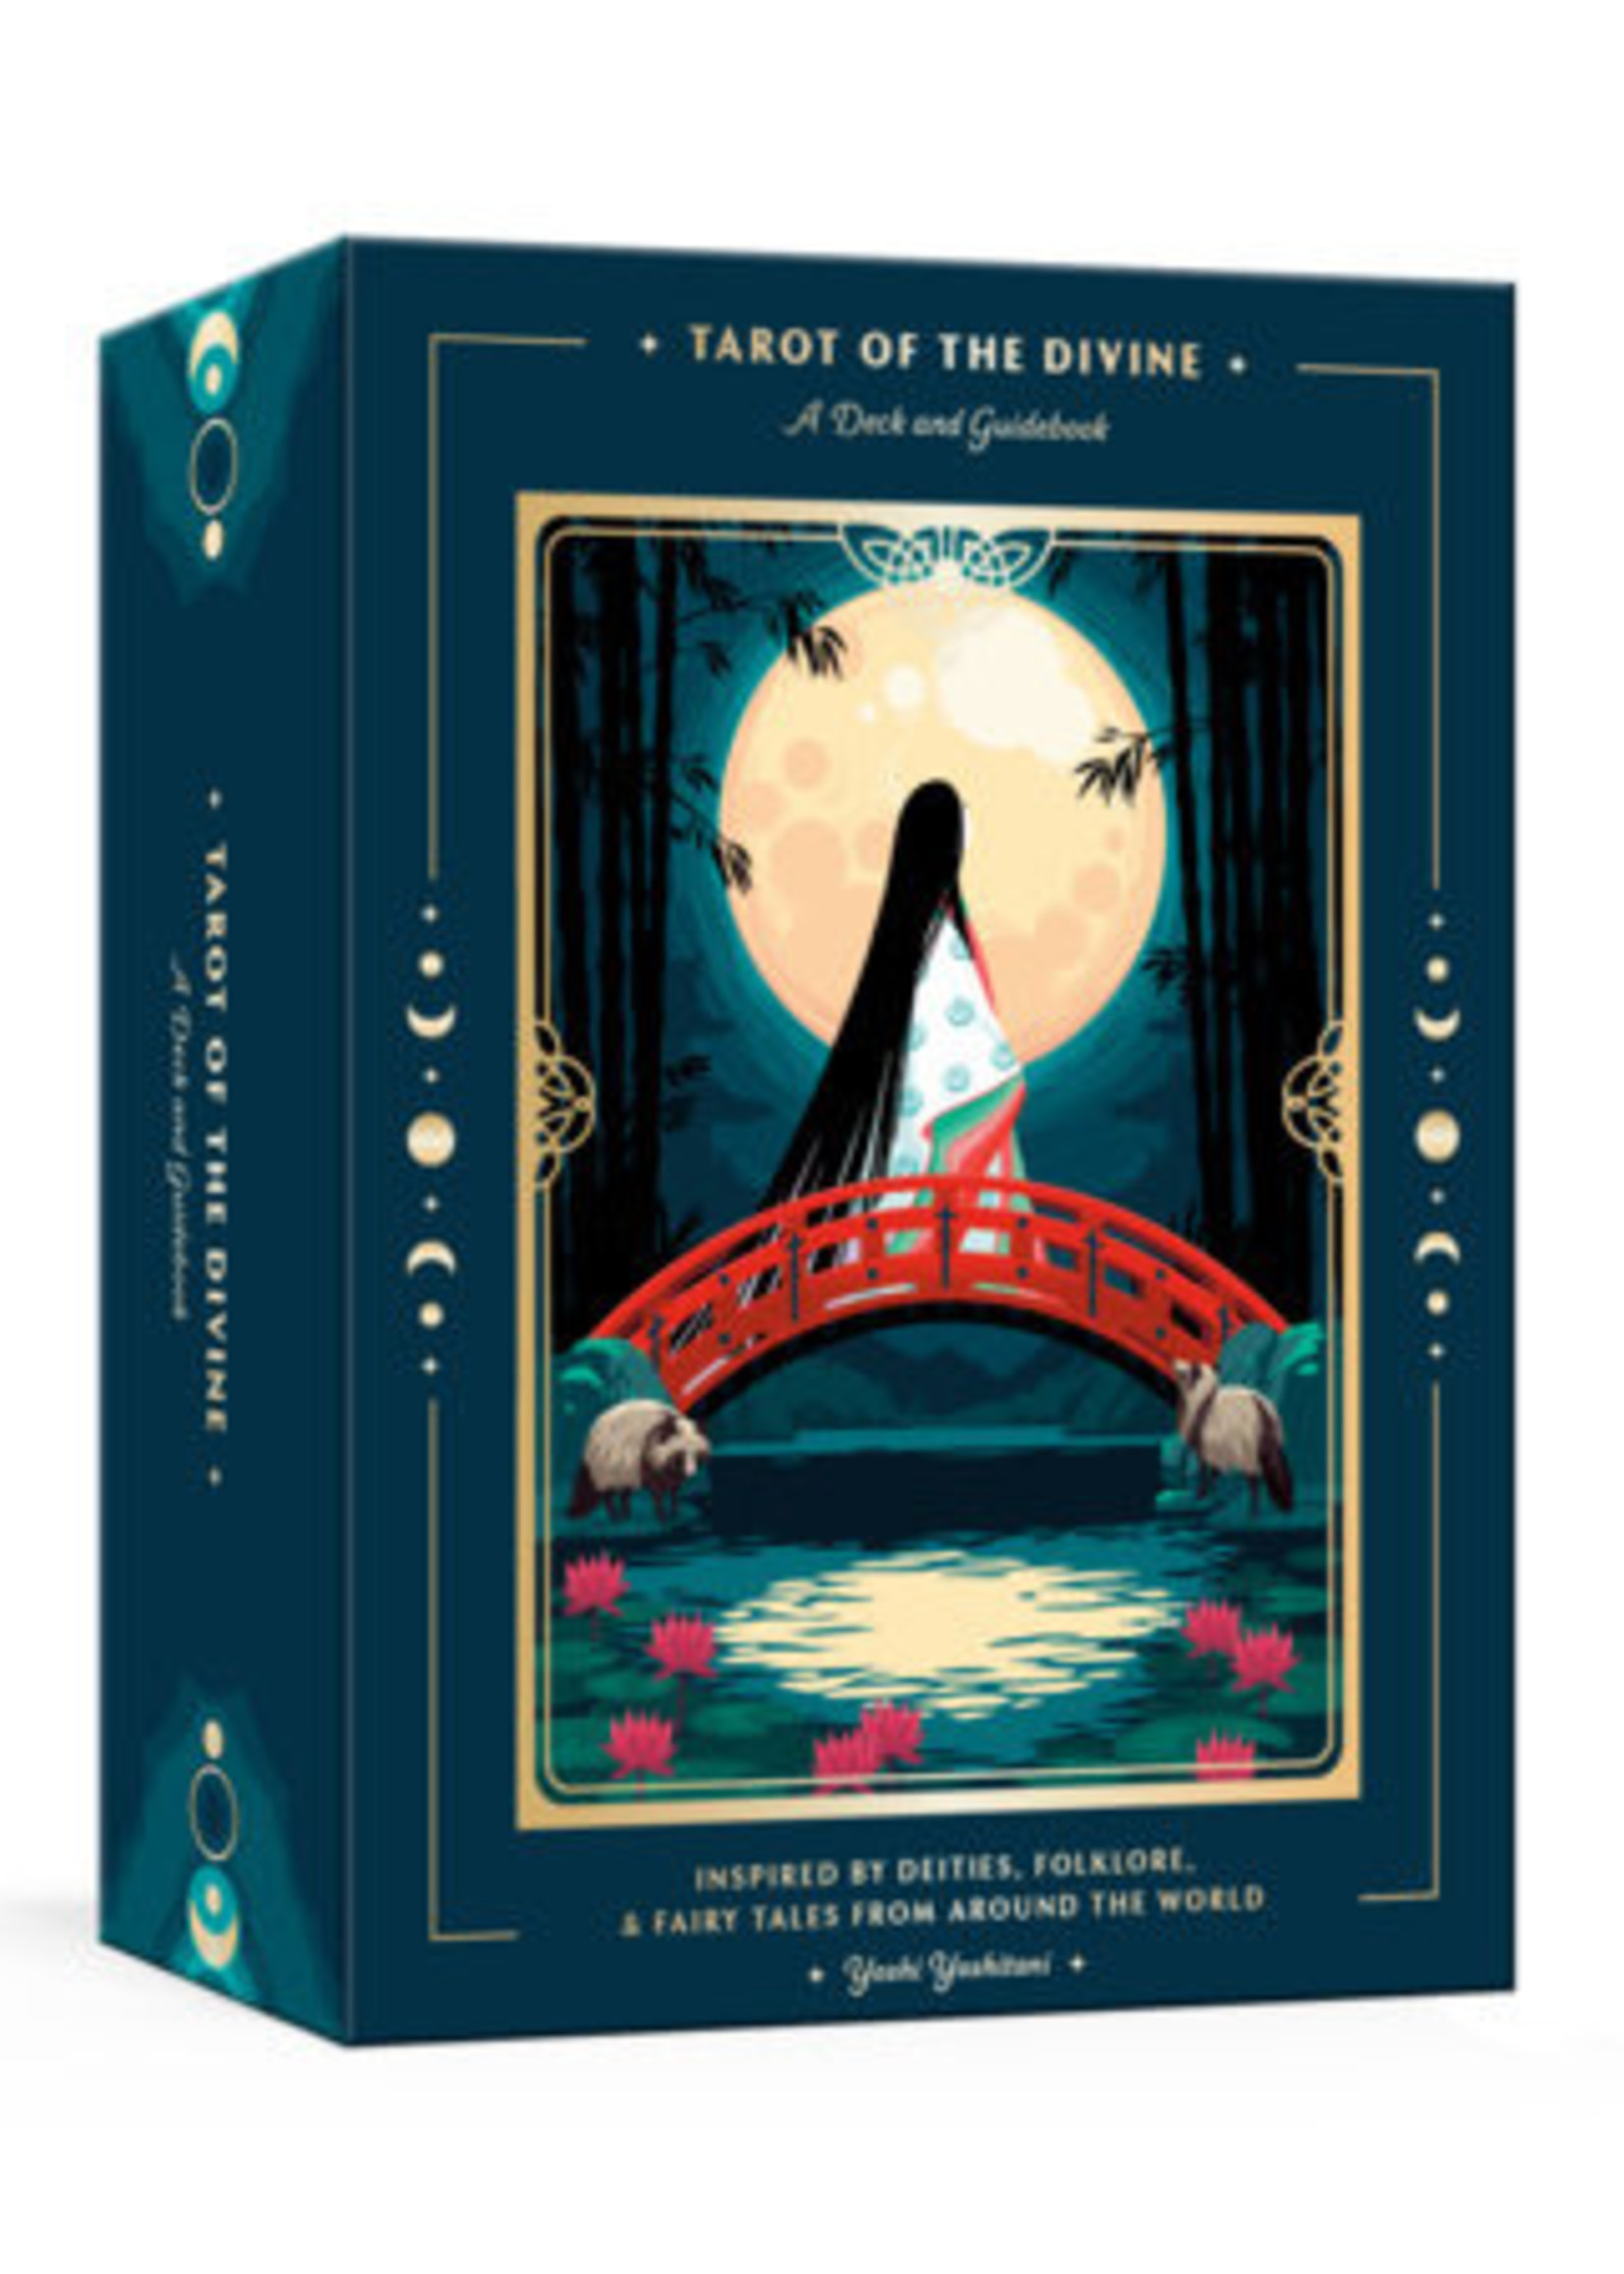 Tarot of the Divine: A Deck and Guidebook Inspired by Deities, Folklore, and Fairy Tales from Around the World - Box